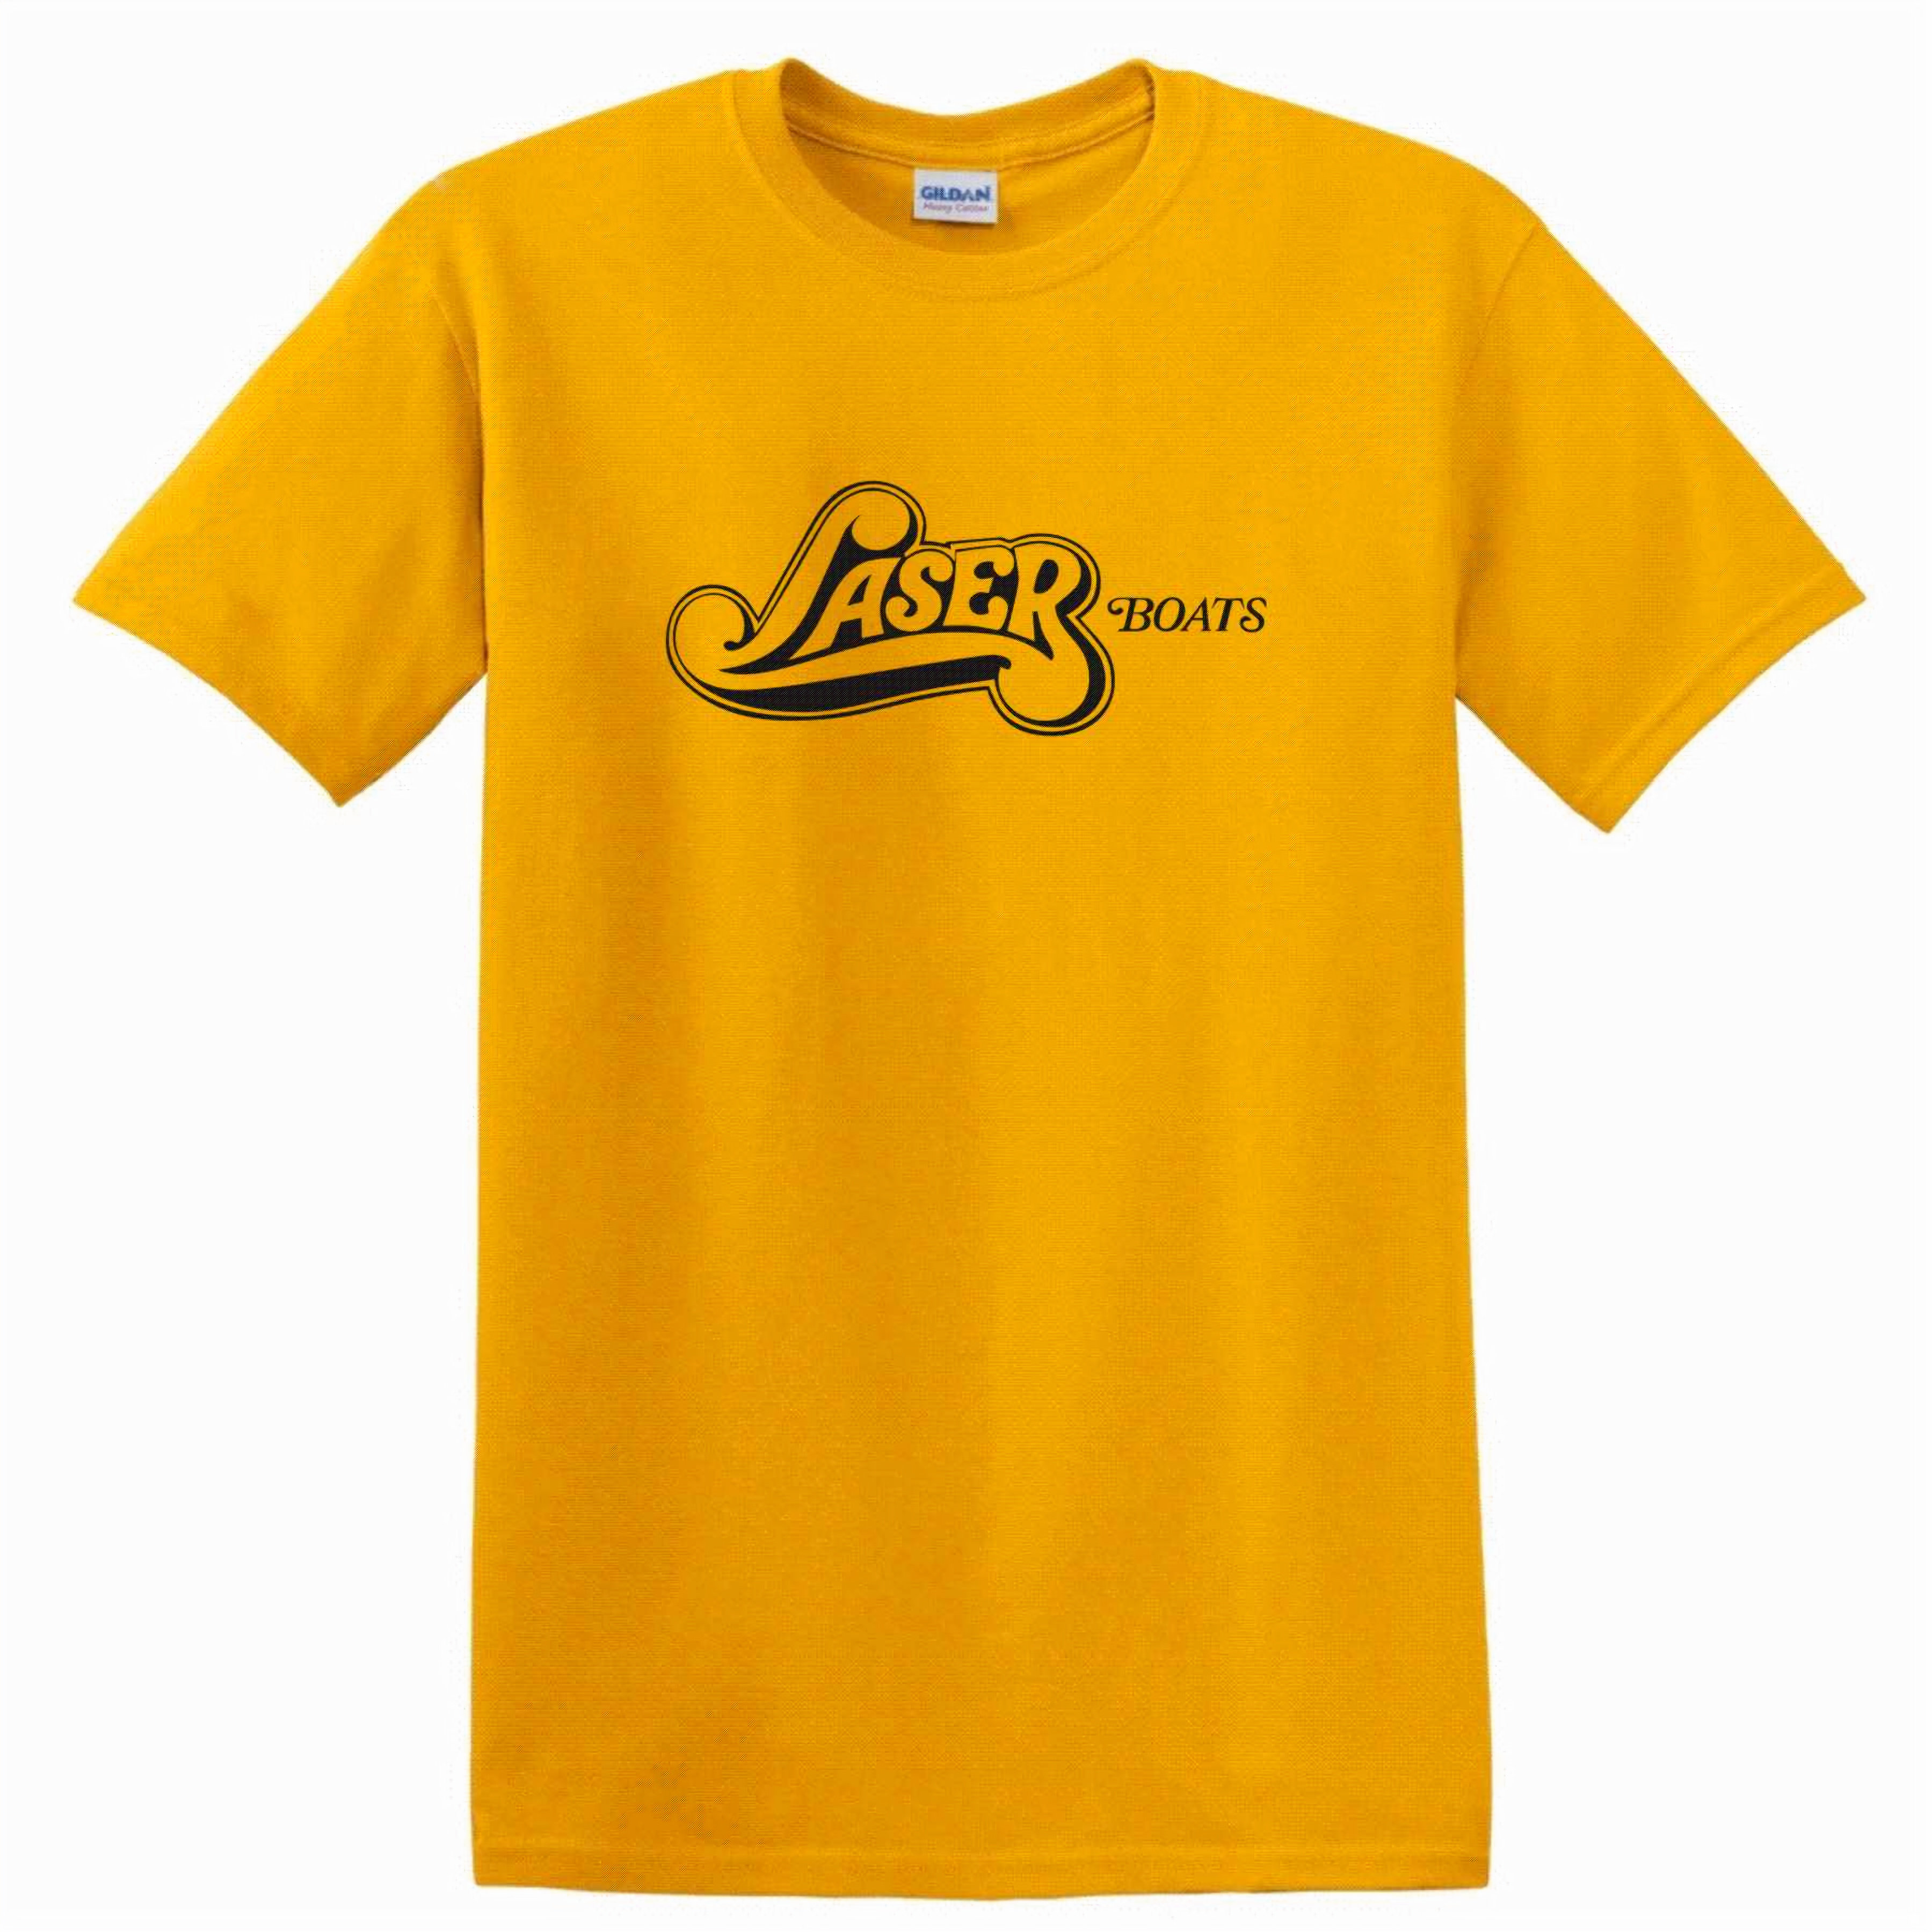 Laser Boats Short Sleeve Tshirt Gold 2x 3x 4x Website